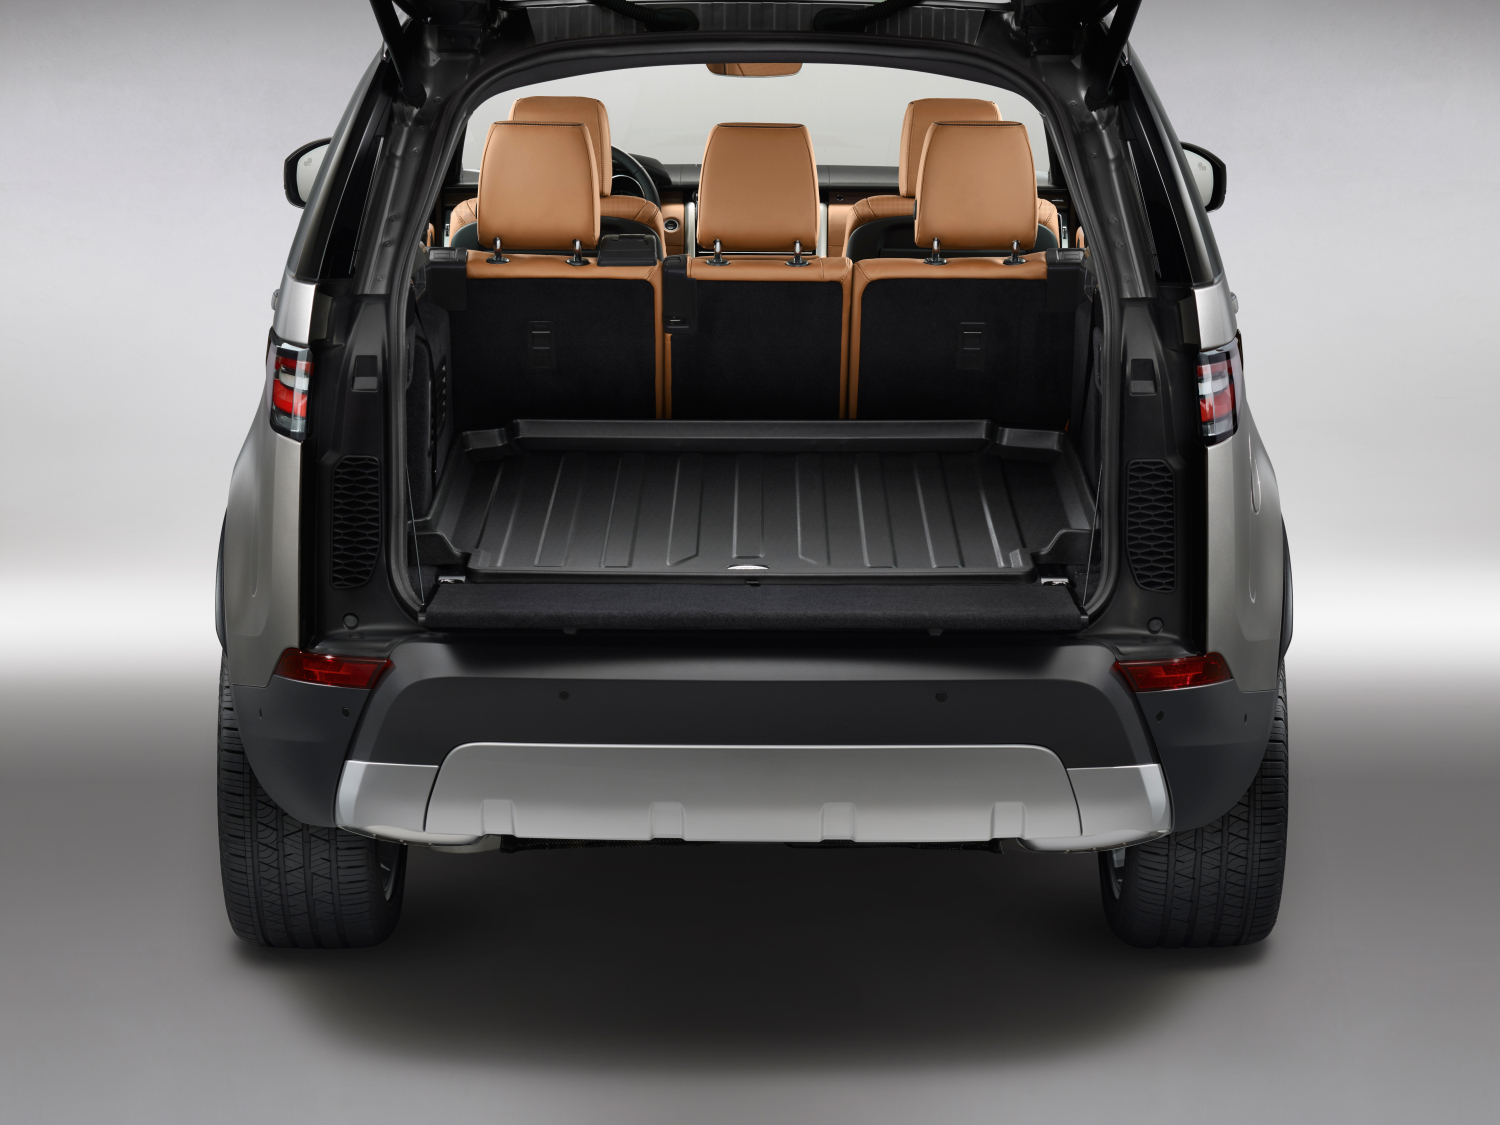 LAND ROVER REVEALS NEW DISCOVERY - STUDIO